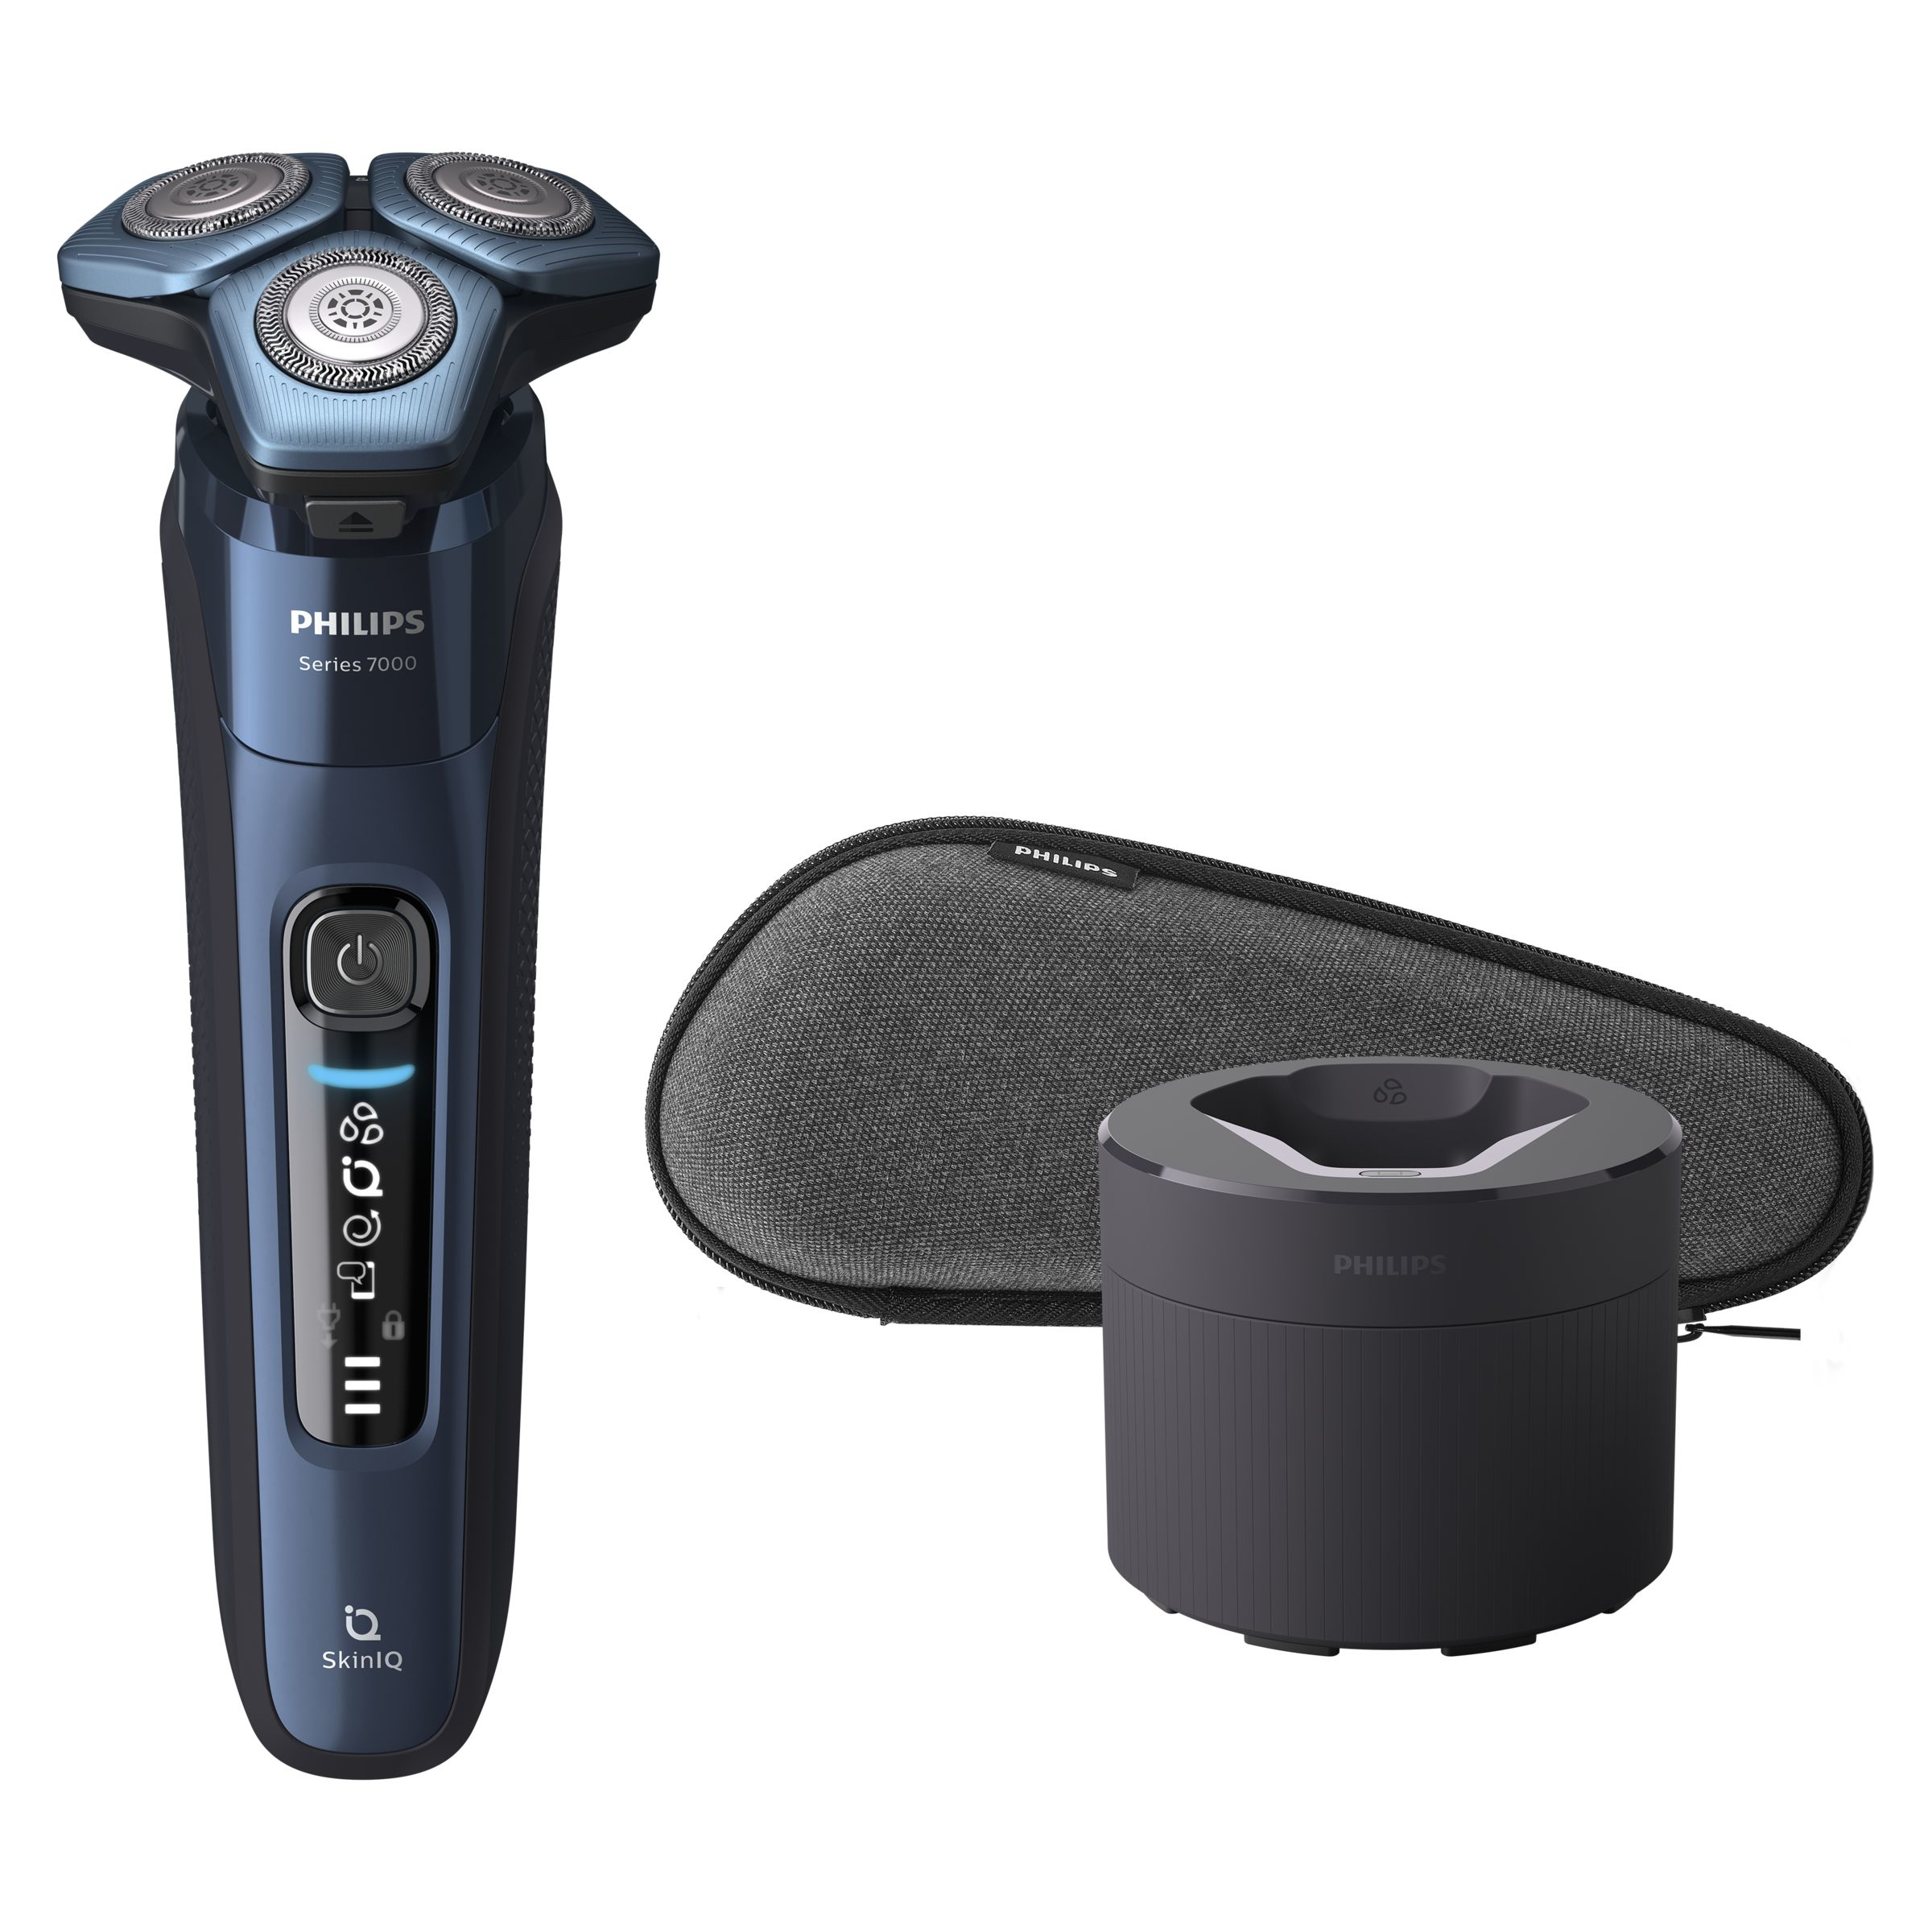 Philips S7782/50 shaver